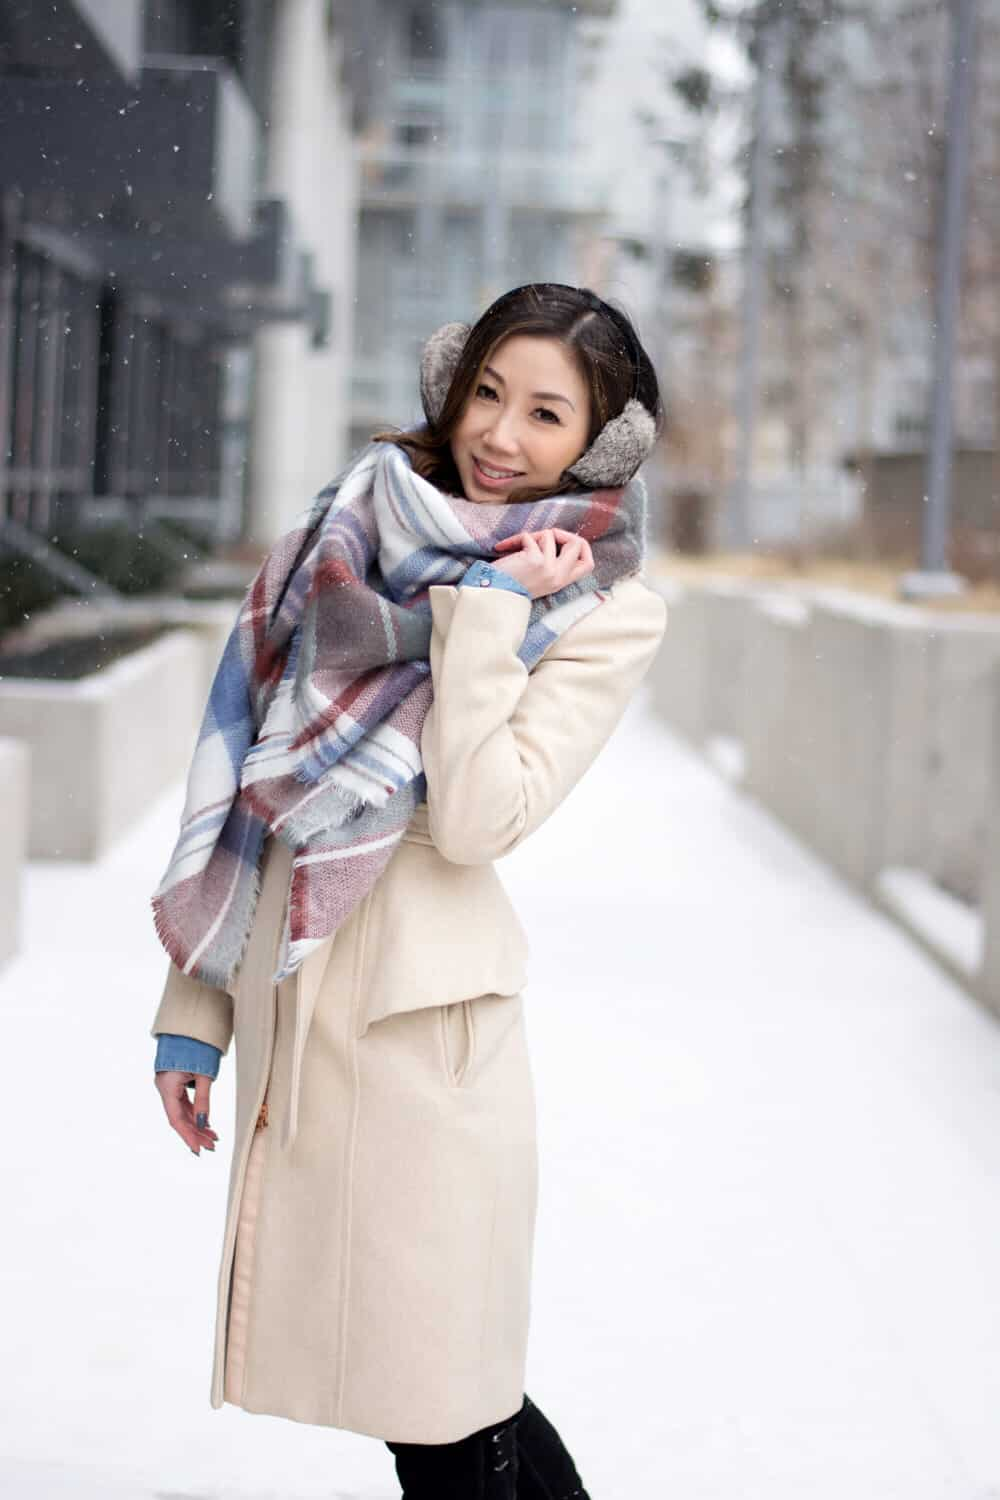 Snow day: long cool coat and soft plaid scarf. So cute!